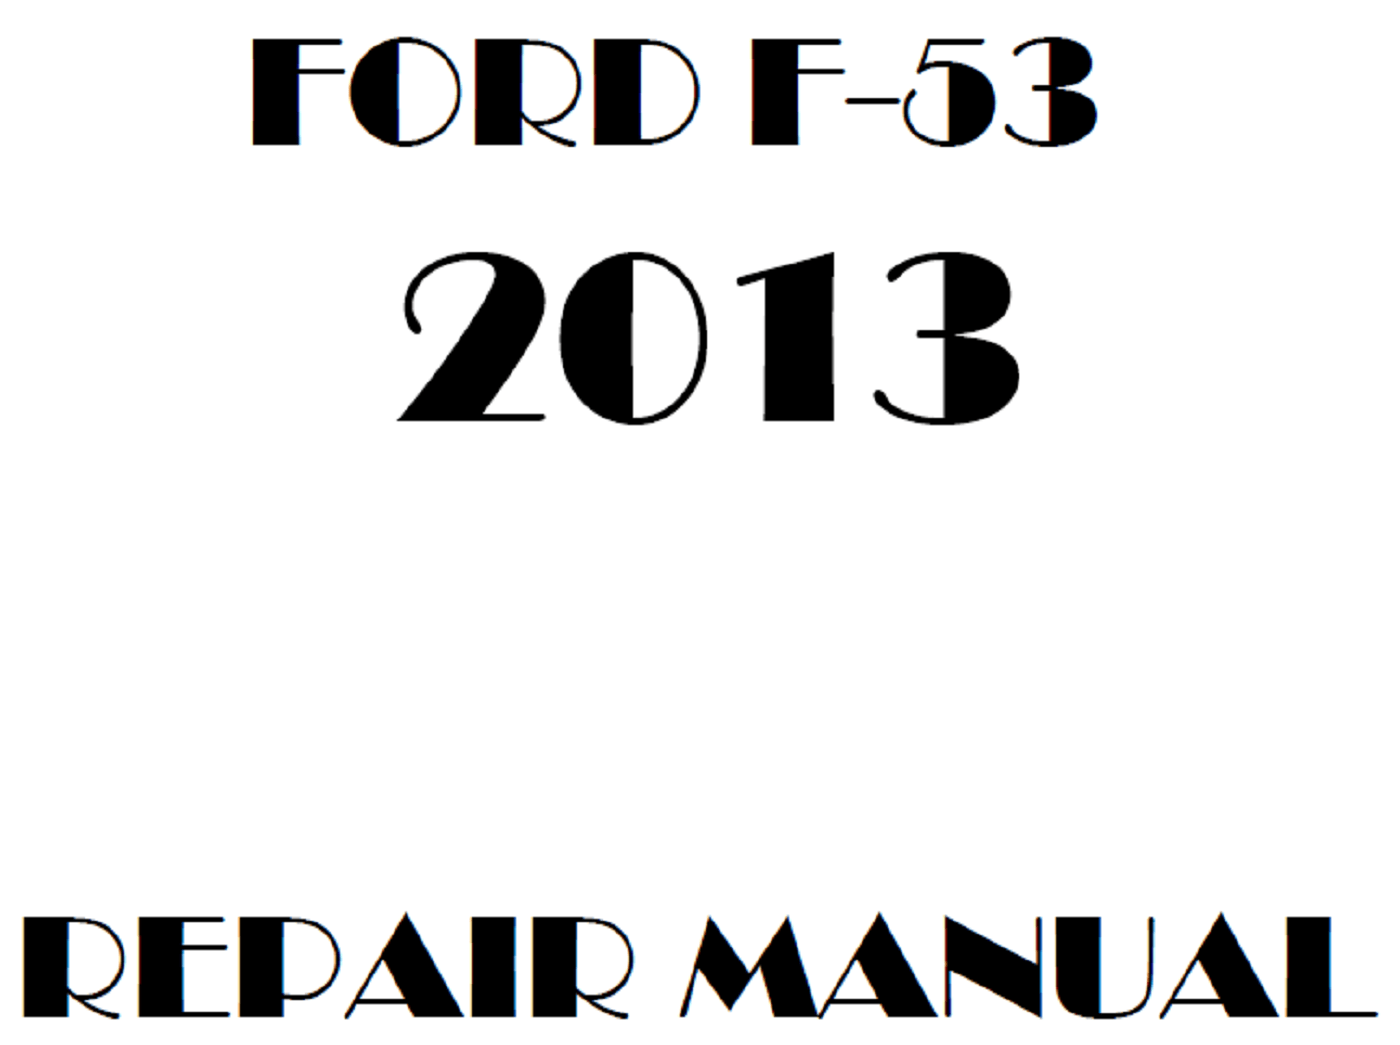 2013 Ford F53 repair manual